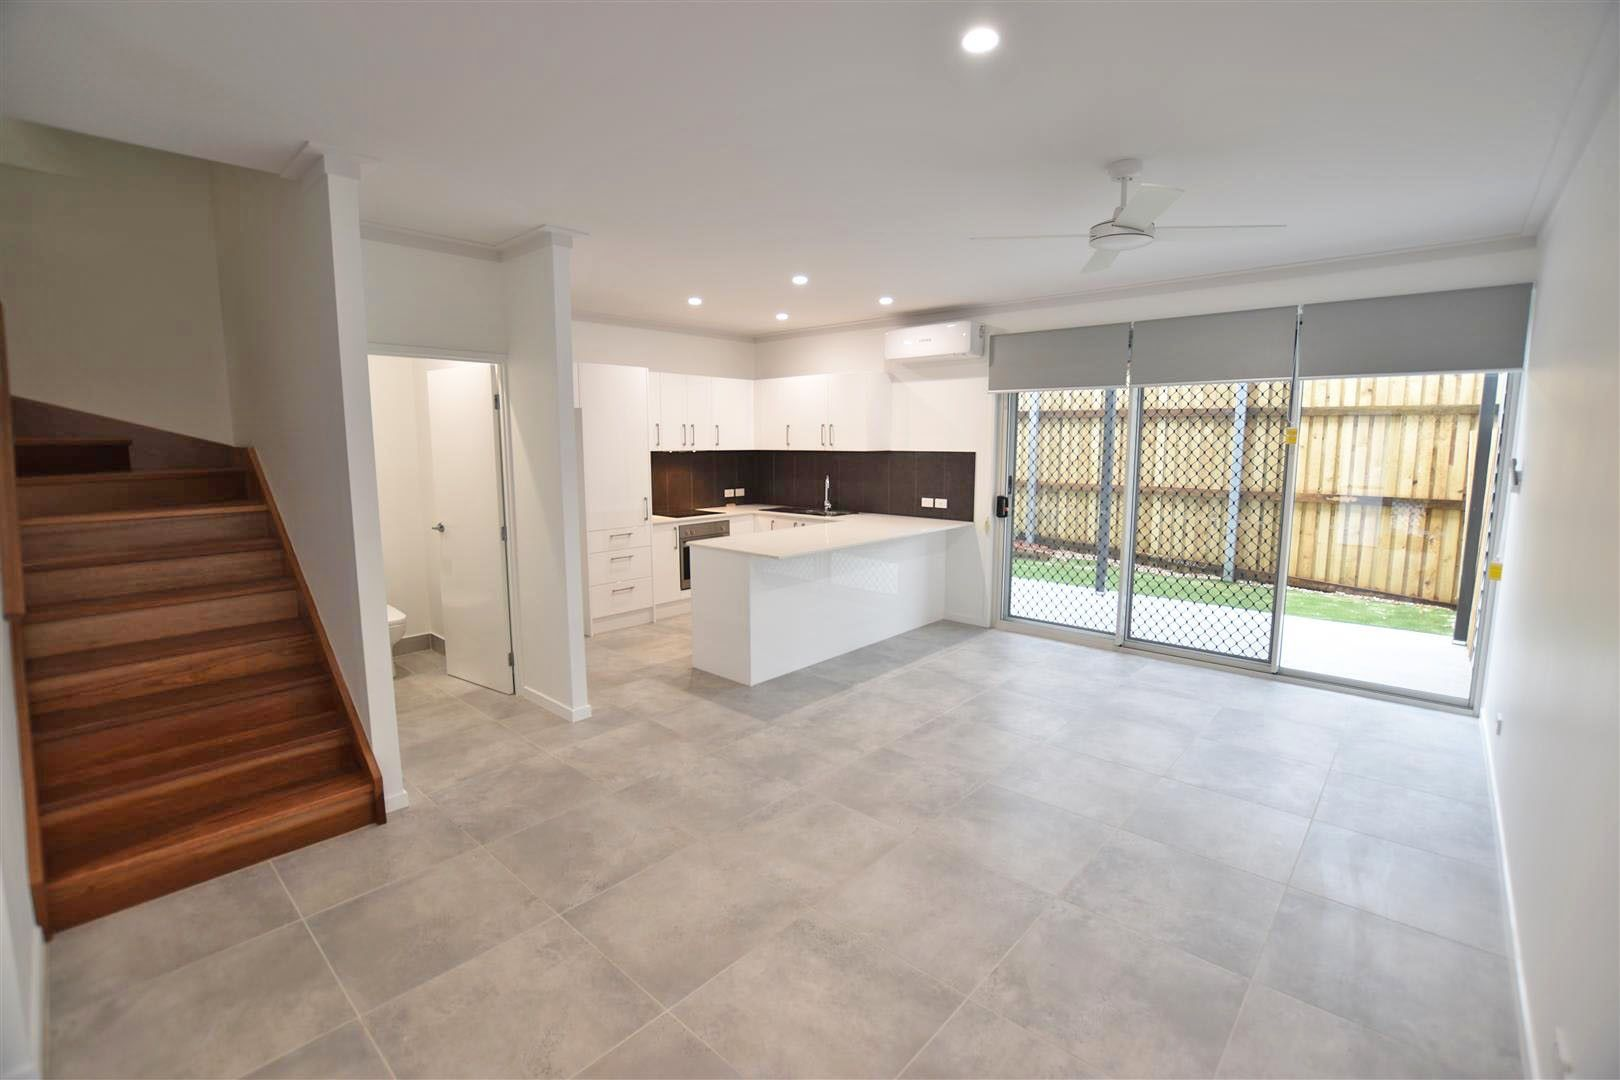 6/1570 Gympie Road, Carseldine QLD 4034, Image 2